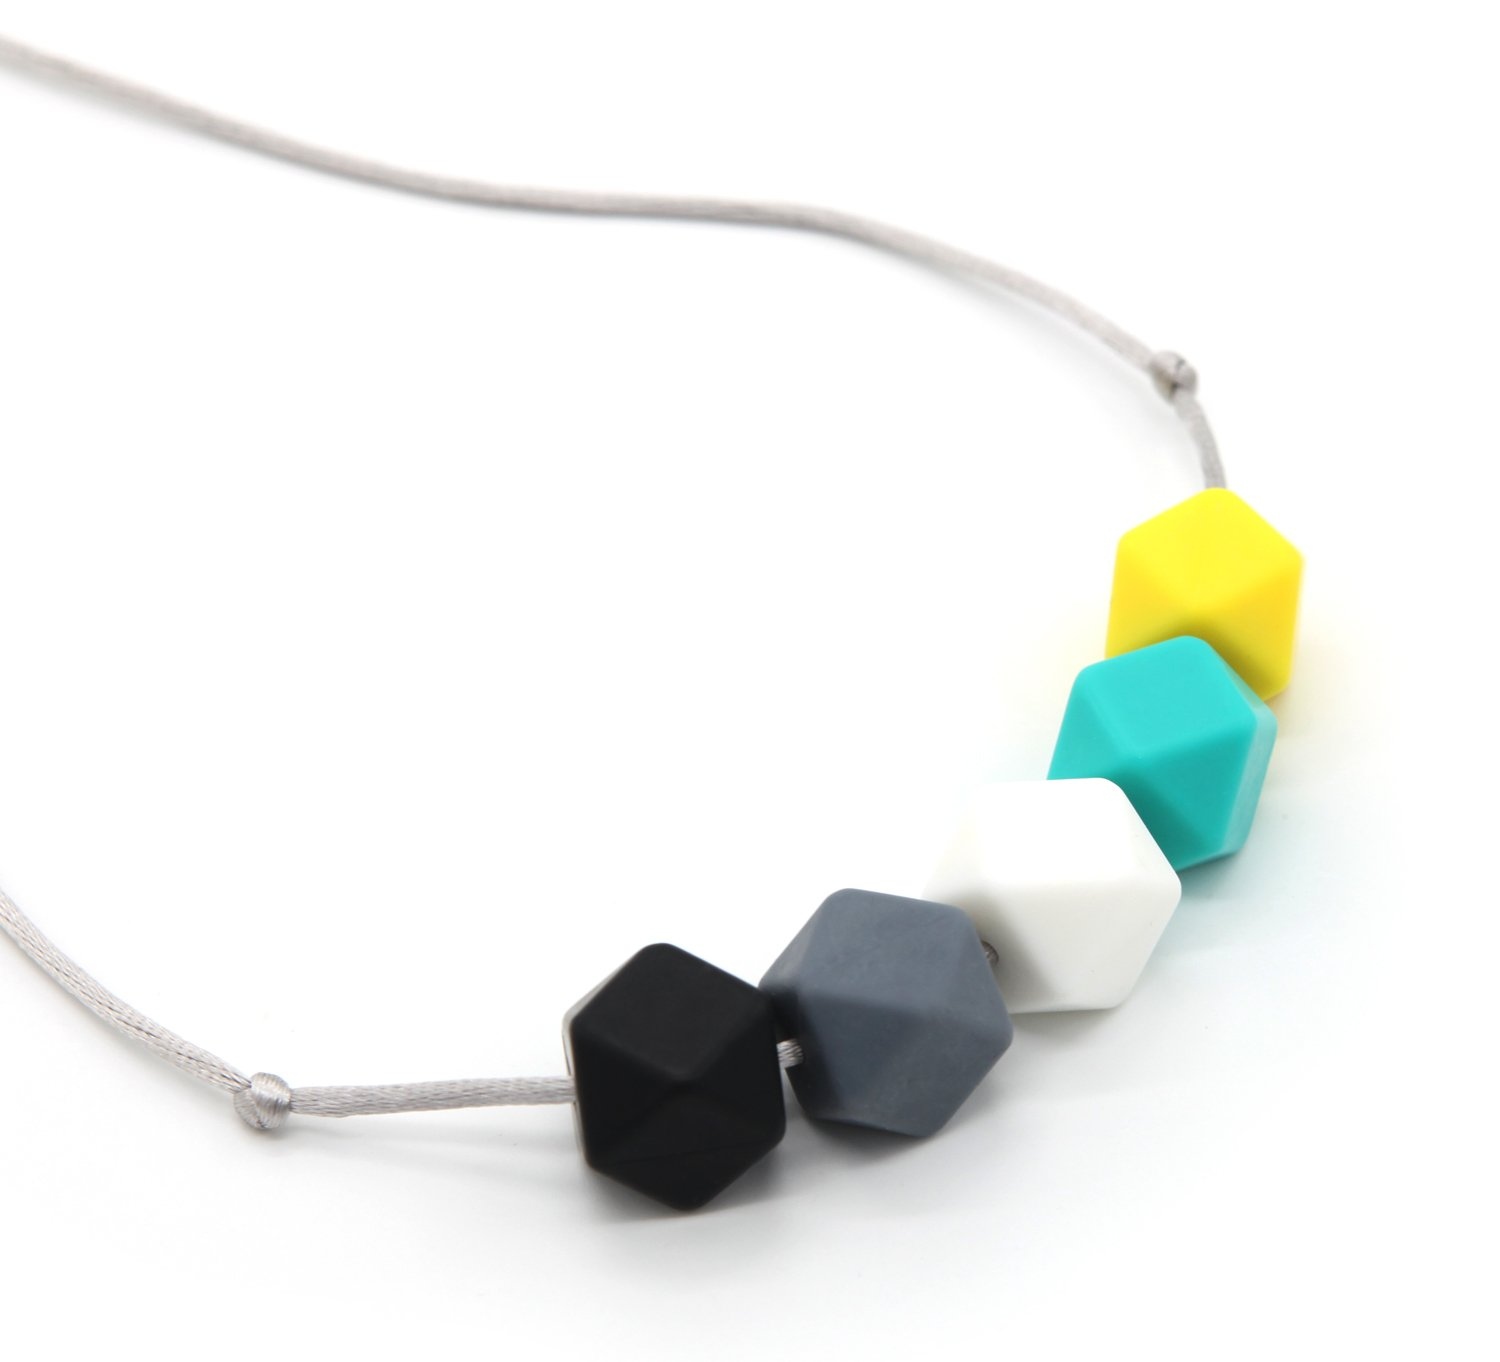 Deeyee Baby Silicone Teething Nursing Necklace Jewelry - BPA Free and FDA Approved - Sweet Cube (Black-Grey-White-Green-Yellow) by Deeyee   B01DLZVWJ8